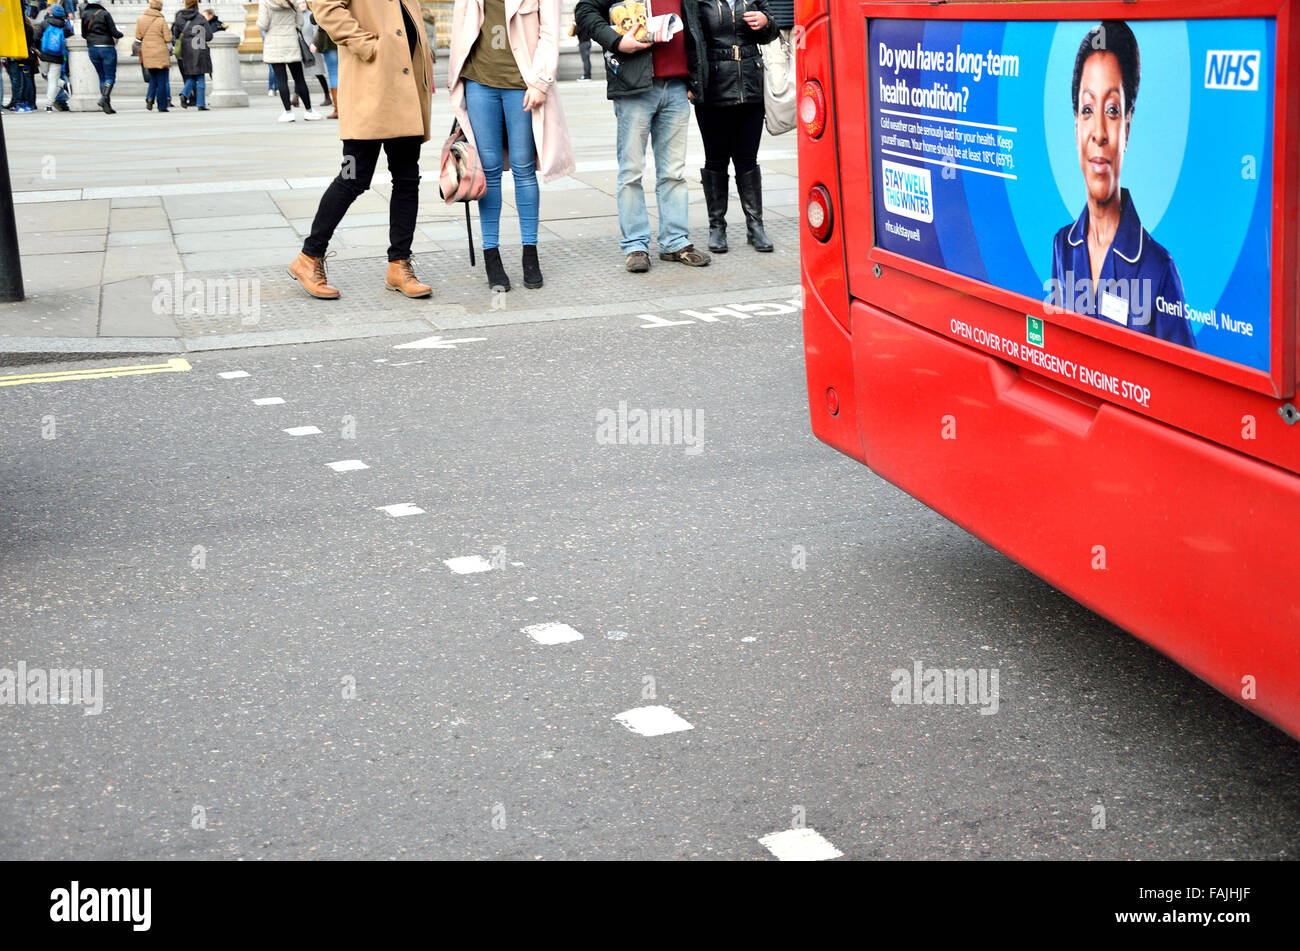 London, England, UK. NHS Stay Well This Winter campaign advert on the back of a bus - Stock Image